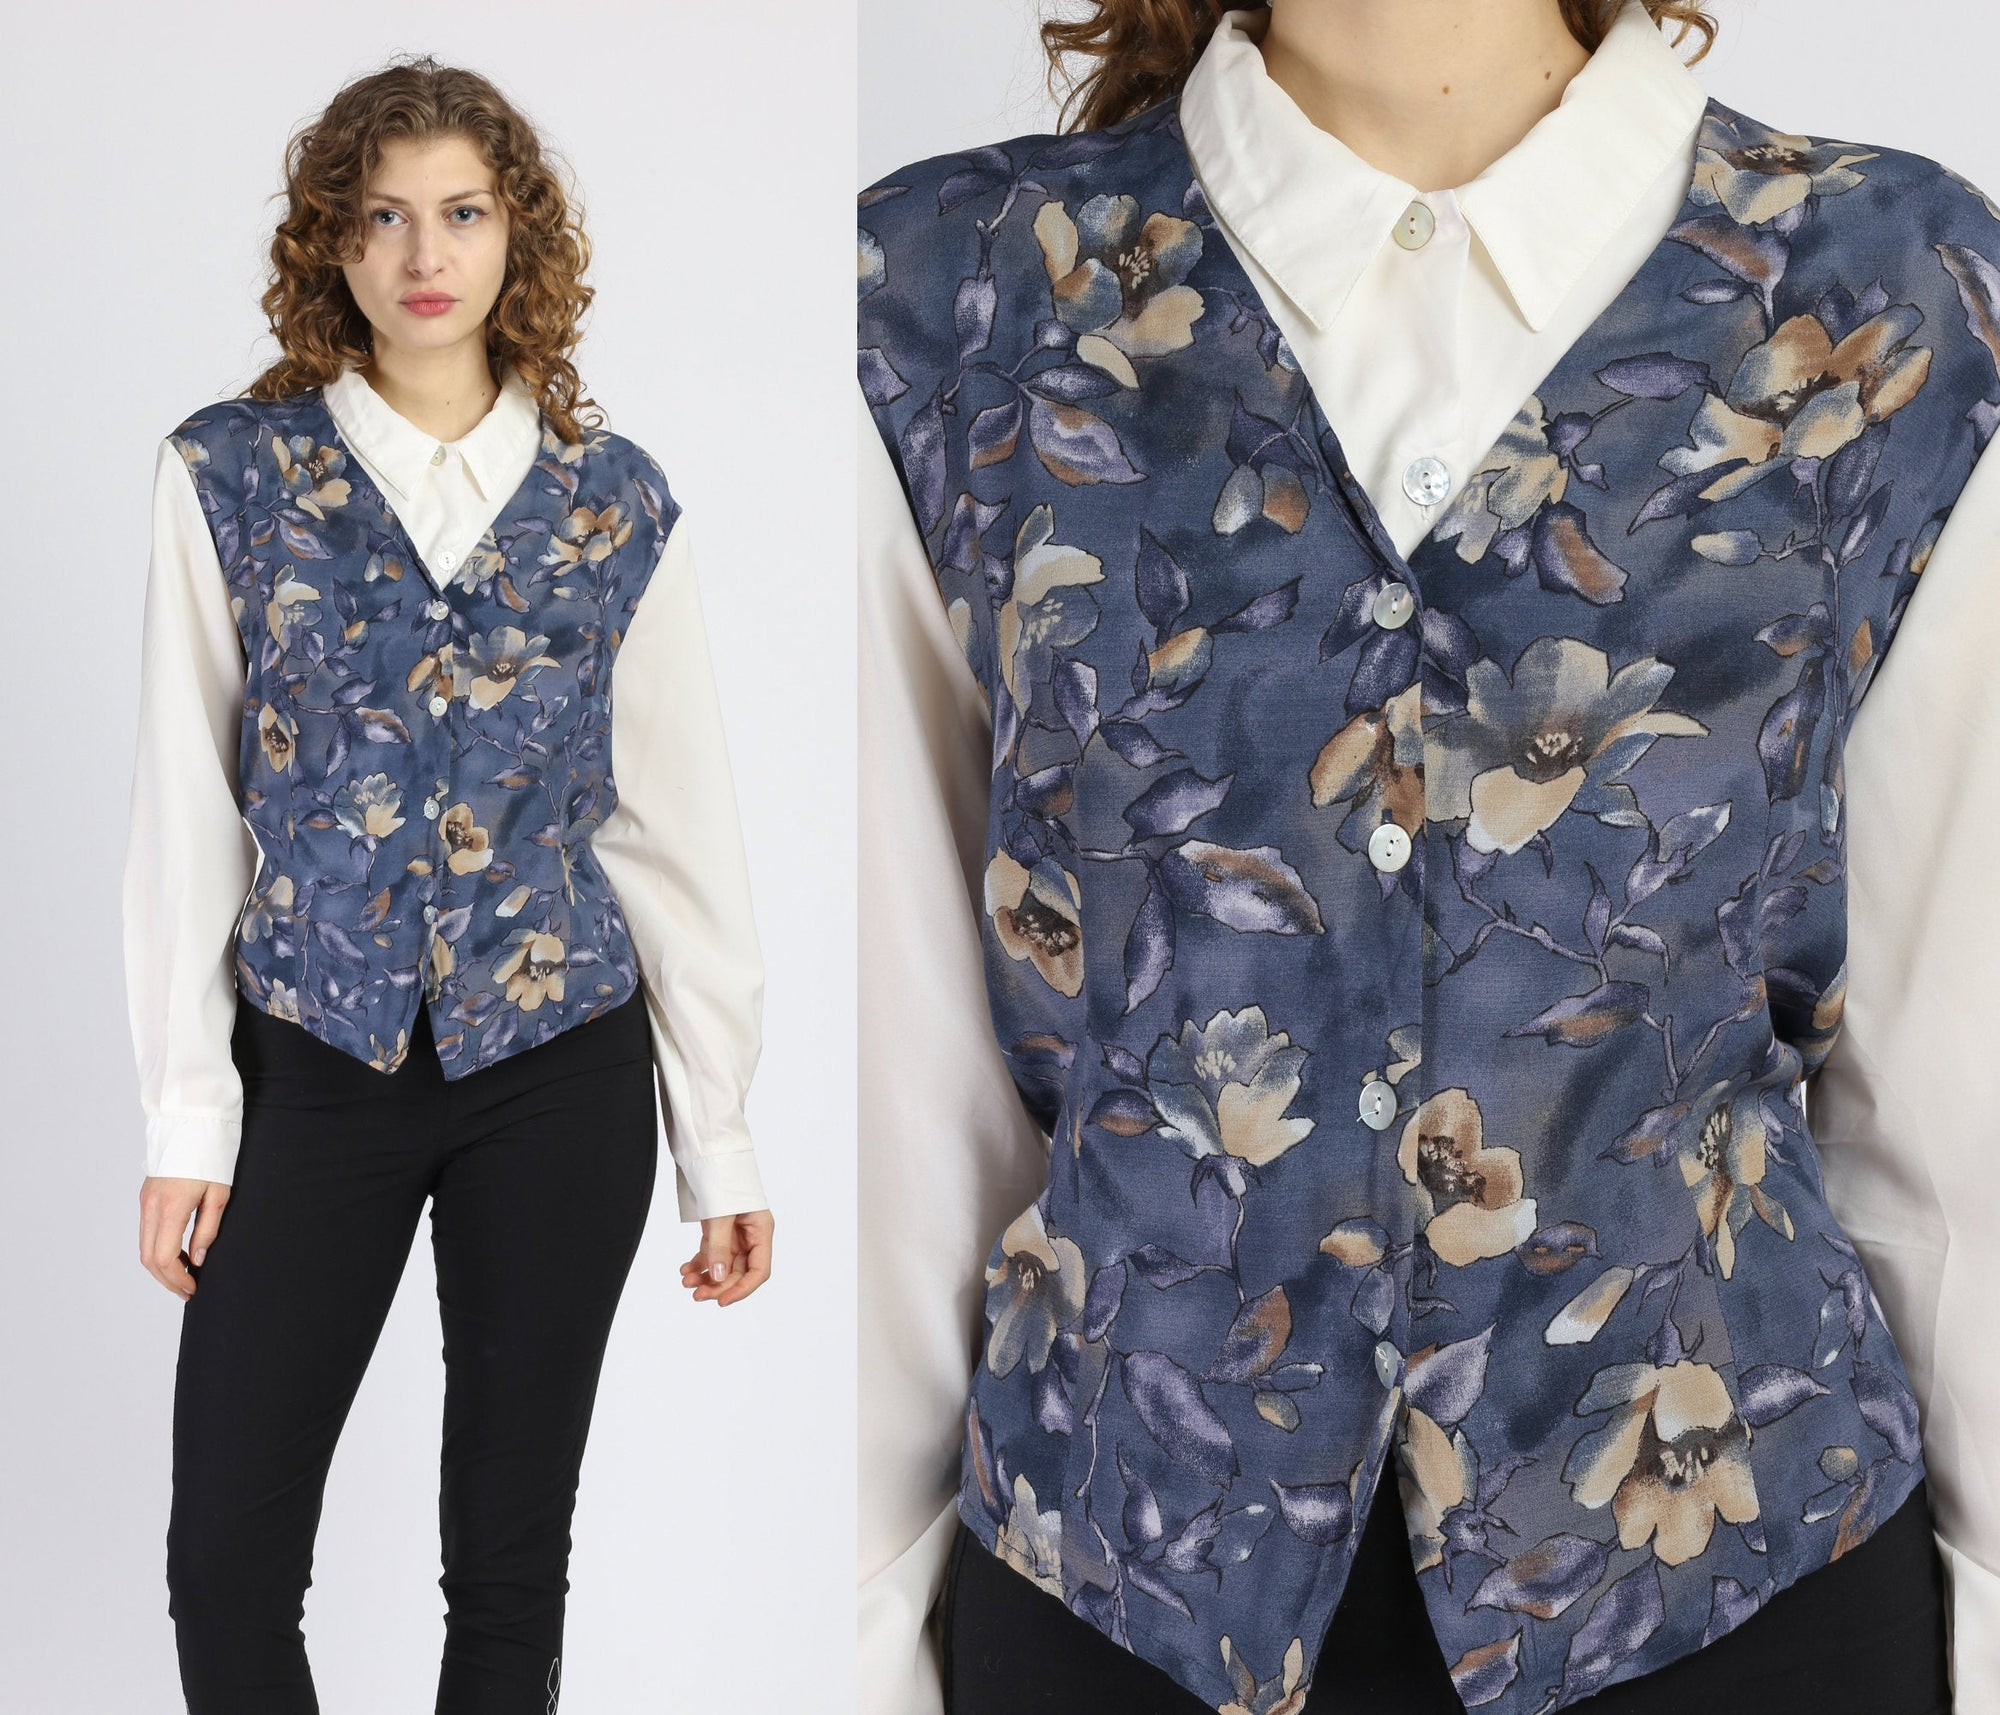 80s Floral Vest Combo Top - Extra Large